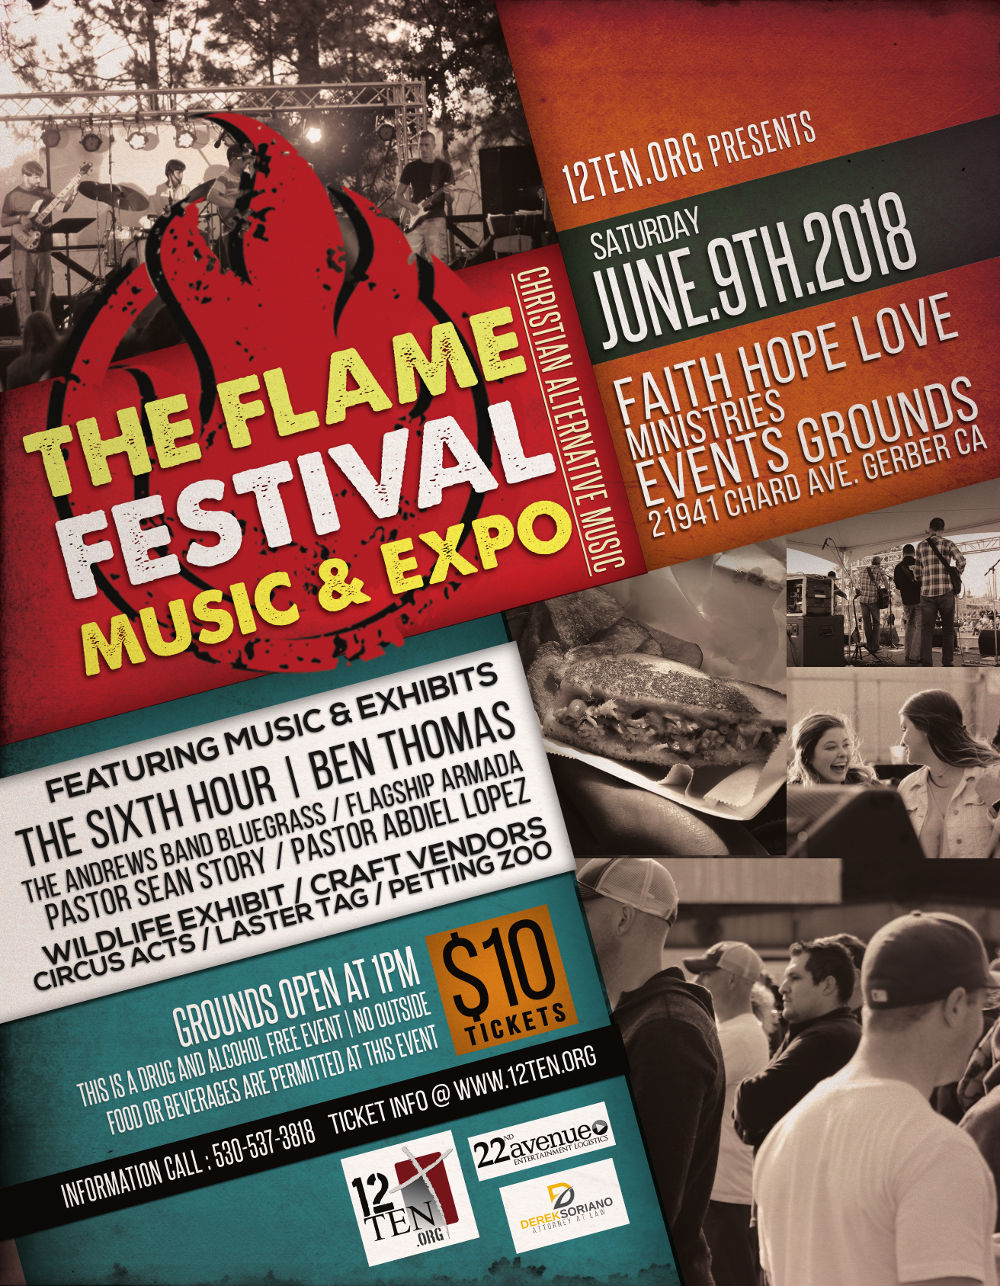 The Flame 2018 Live Music Festival and Exposition Gerber, Ca.